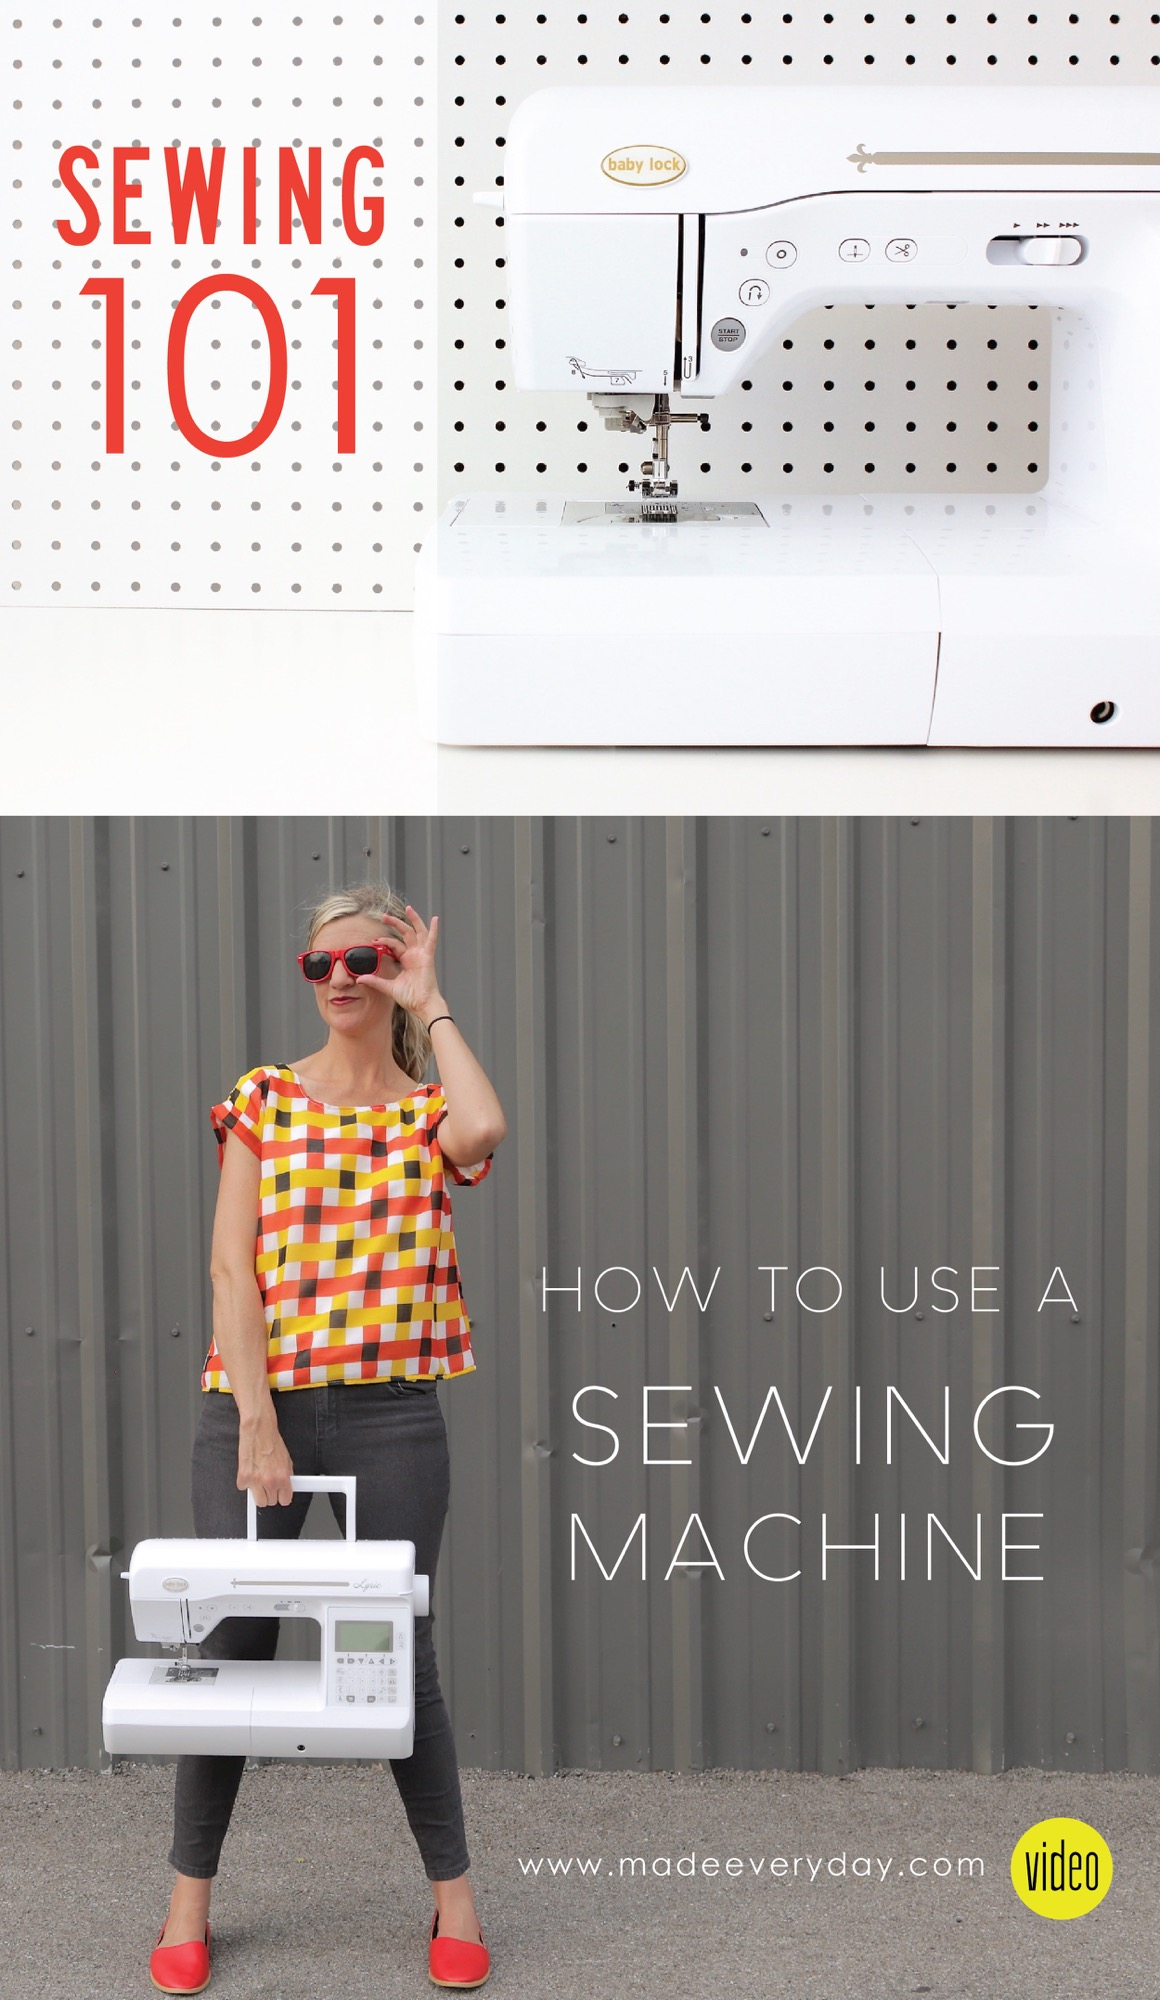 how to sew using a sewing machine